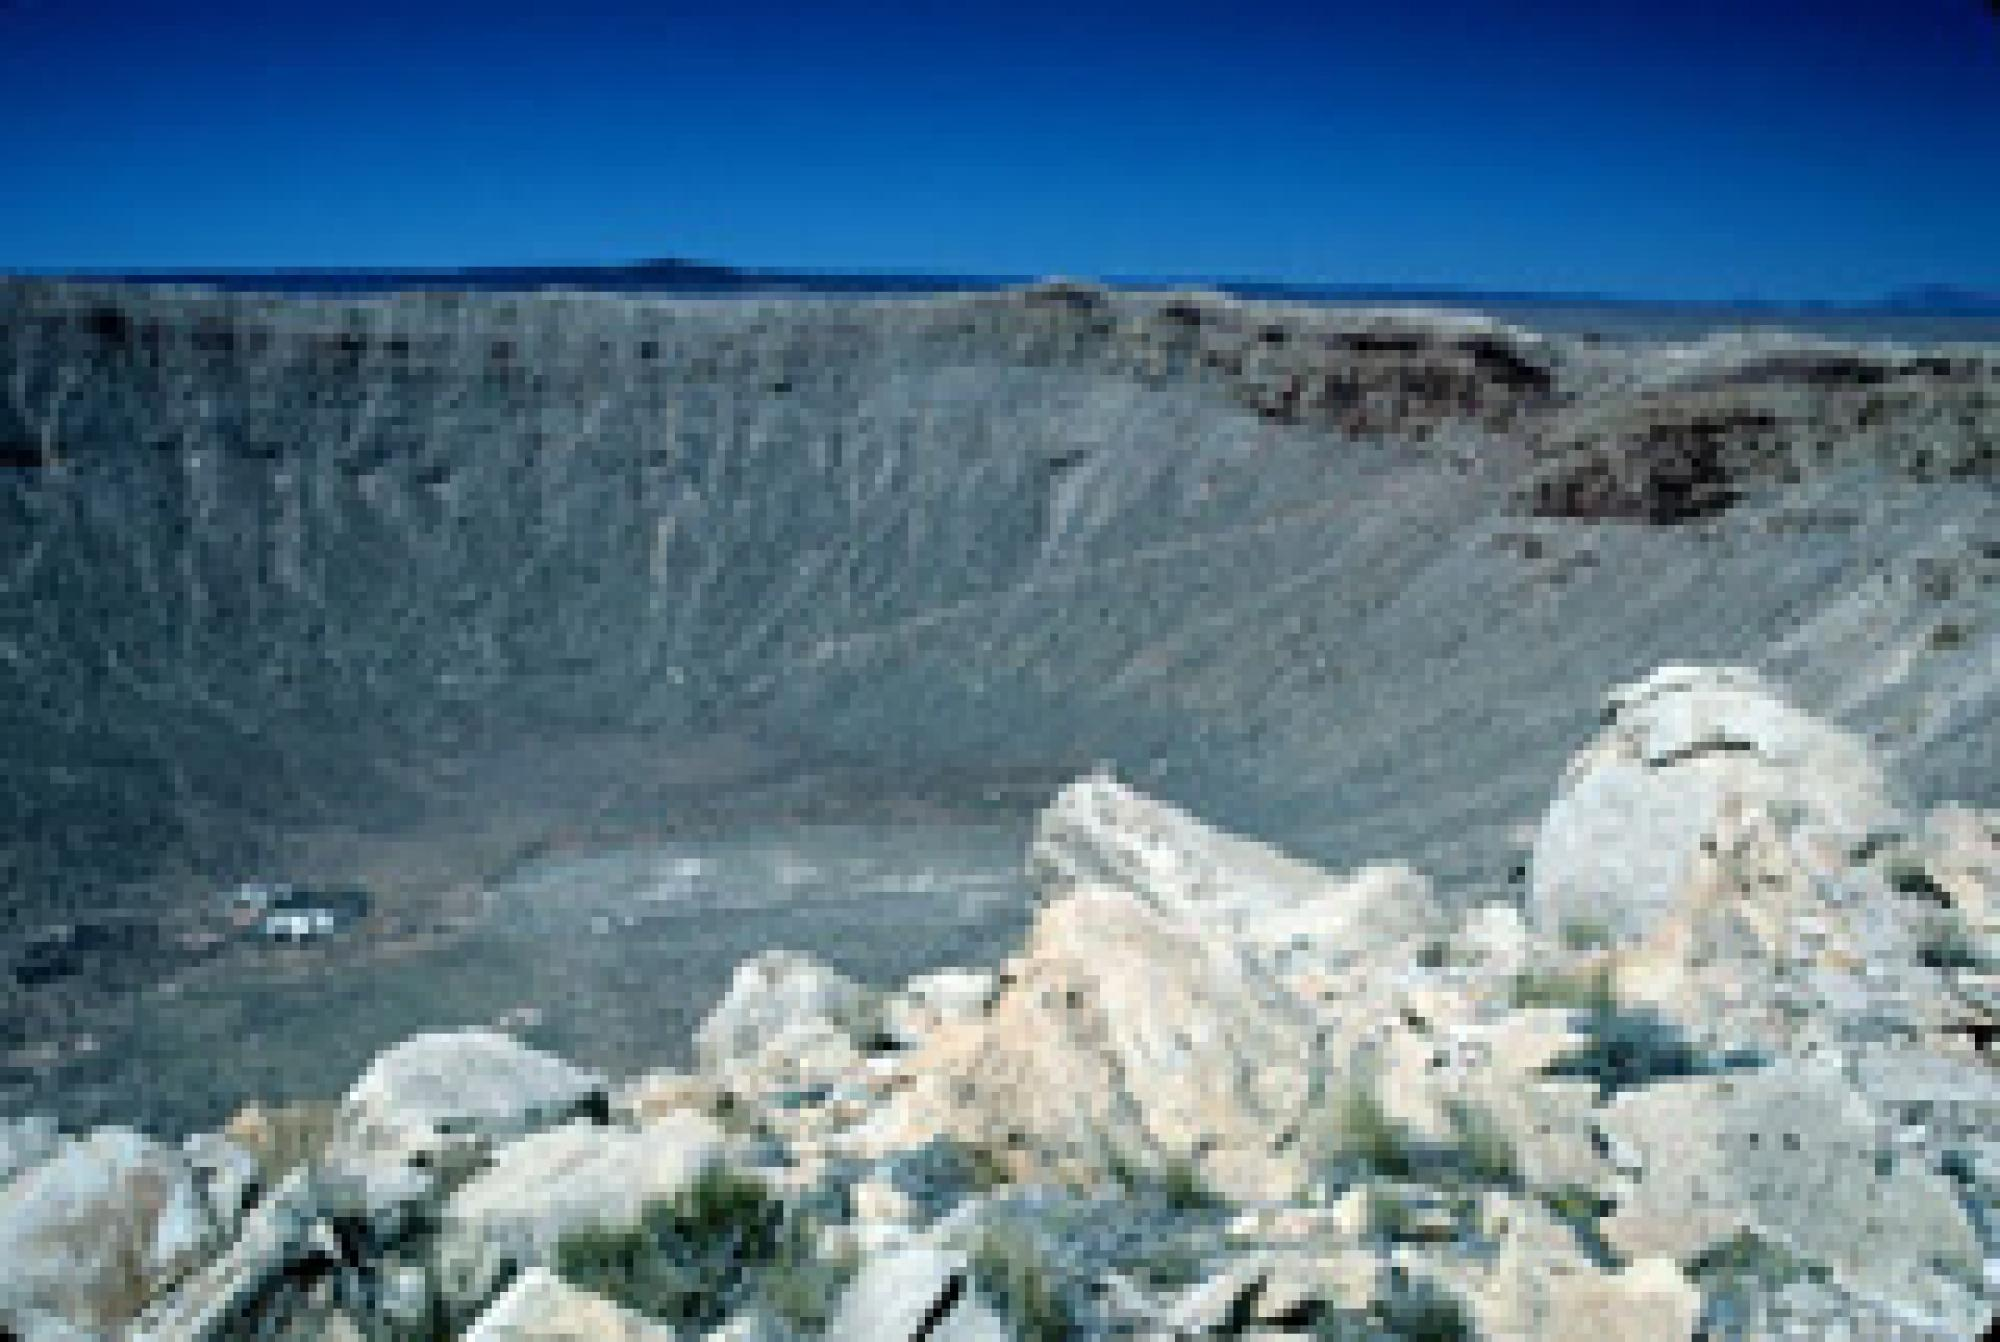 Meteor Crater, also called Barringer Meteorite Crater. This view contrasts the boulders on the east rim with the deep interior.